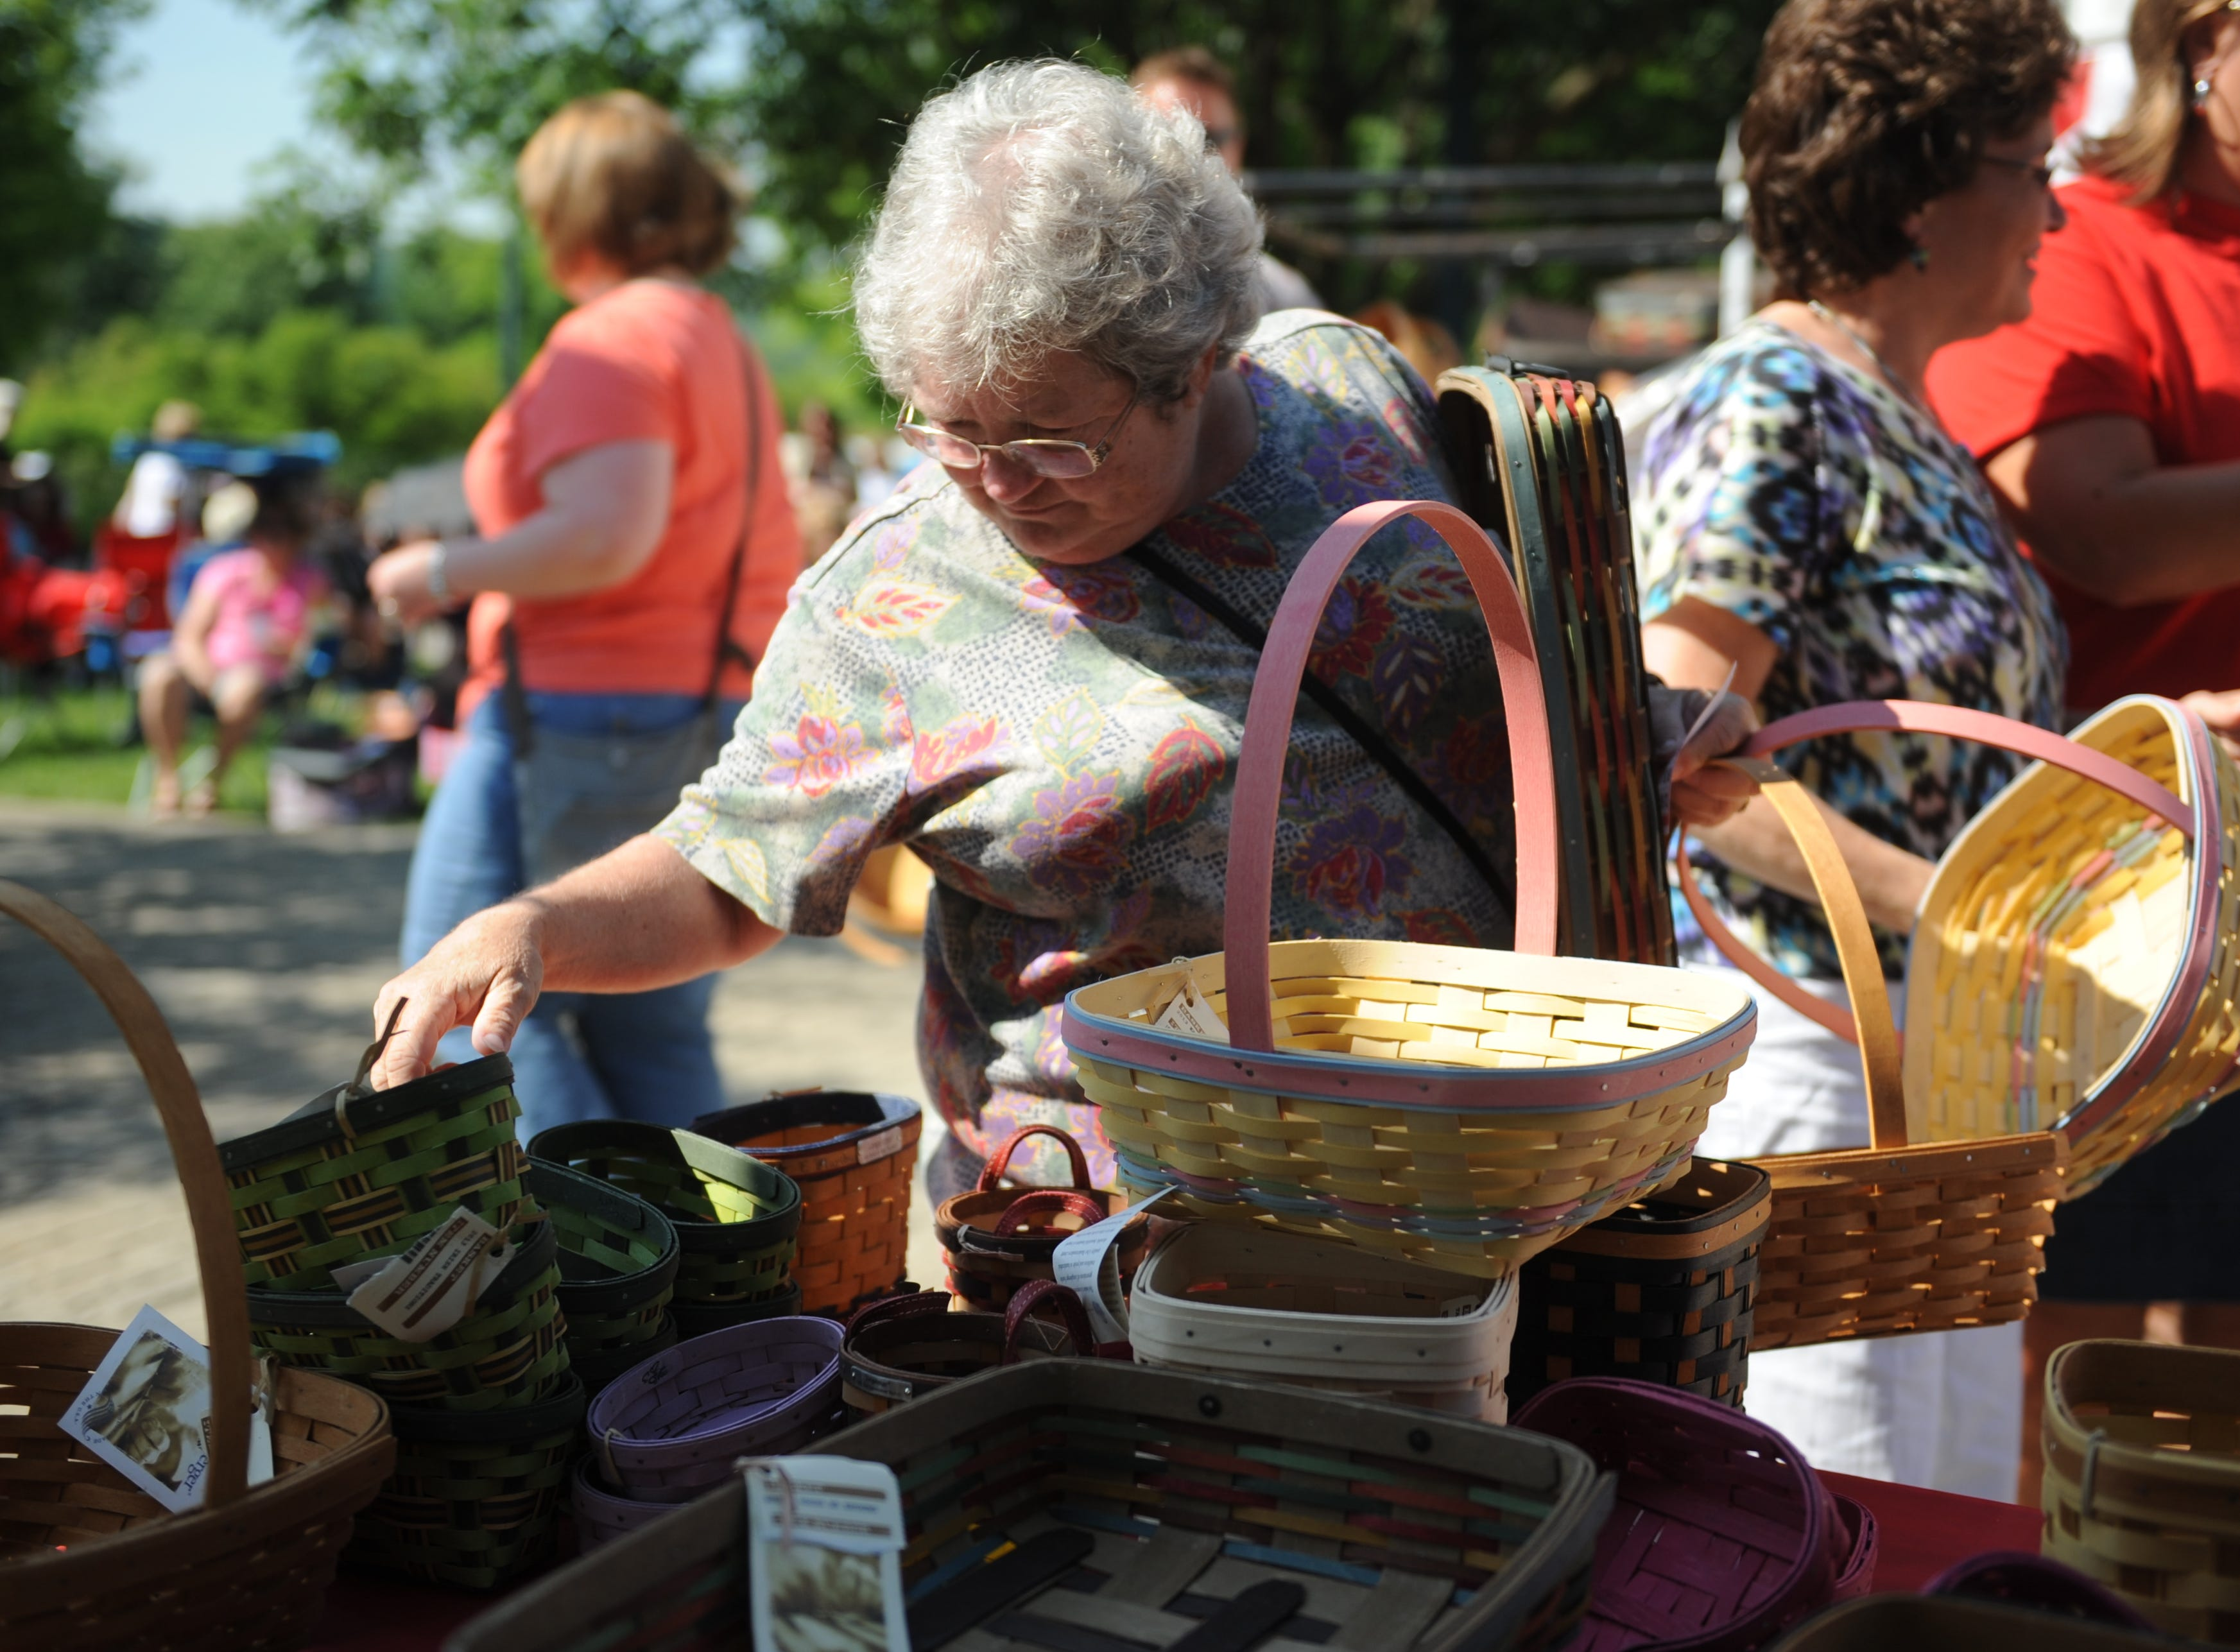 Diane Melvin of Flatwoods, W. Va. picks out baskets after winning at Basket INGO. Bingo numbers are called out and participants receive free Longaberger baskets. Longaberger's Great American Picnic Celebration continued on Saturday at Longaberger Homestead.